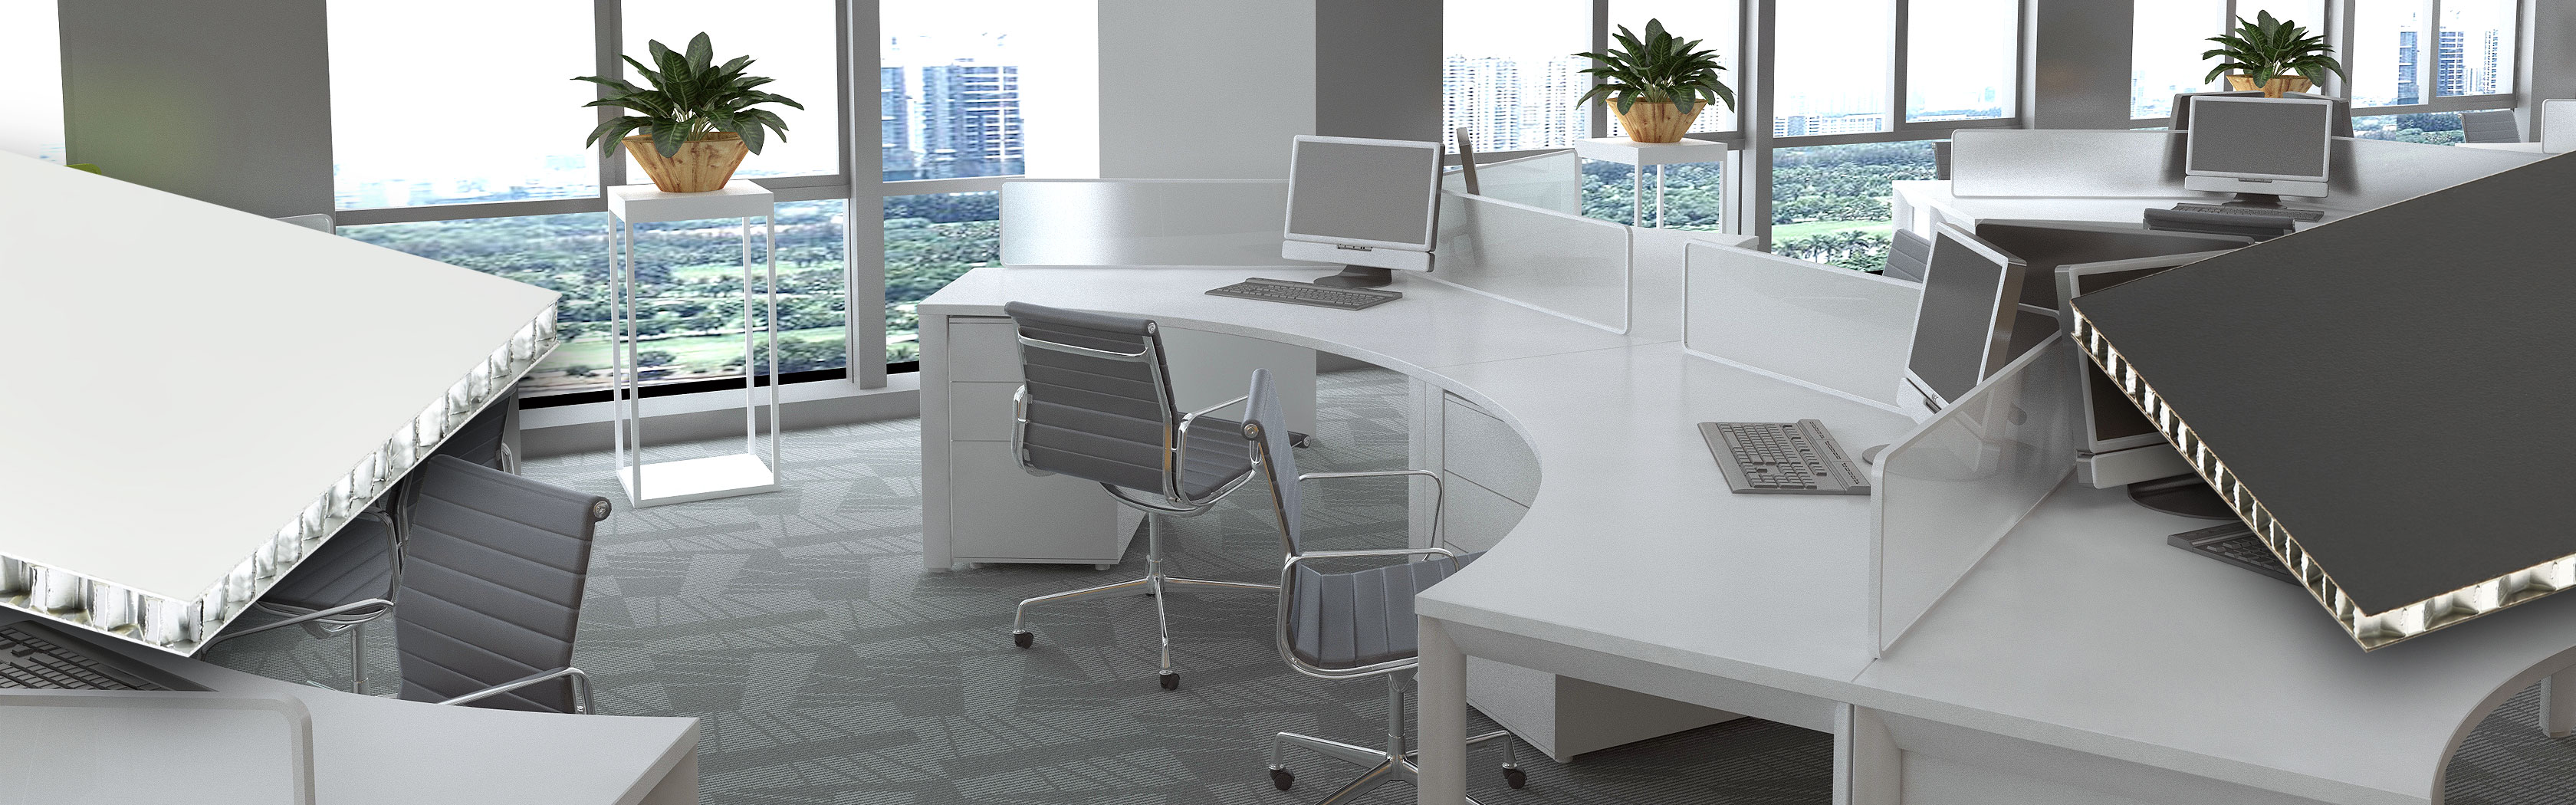 Features And Performance Of High End Furniture, Whether Designed For  Domestic, Professional,